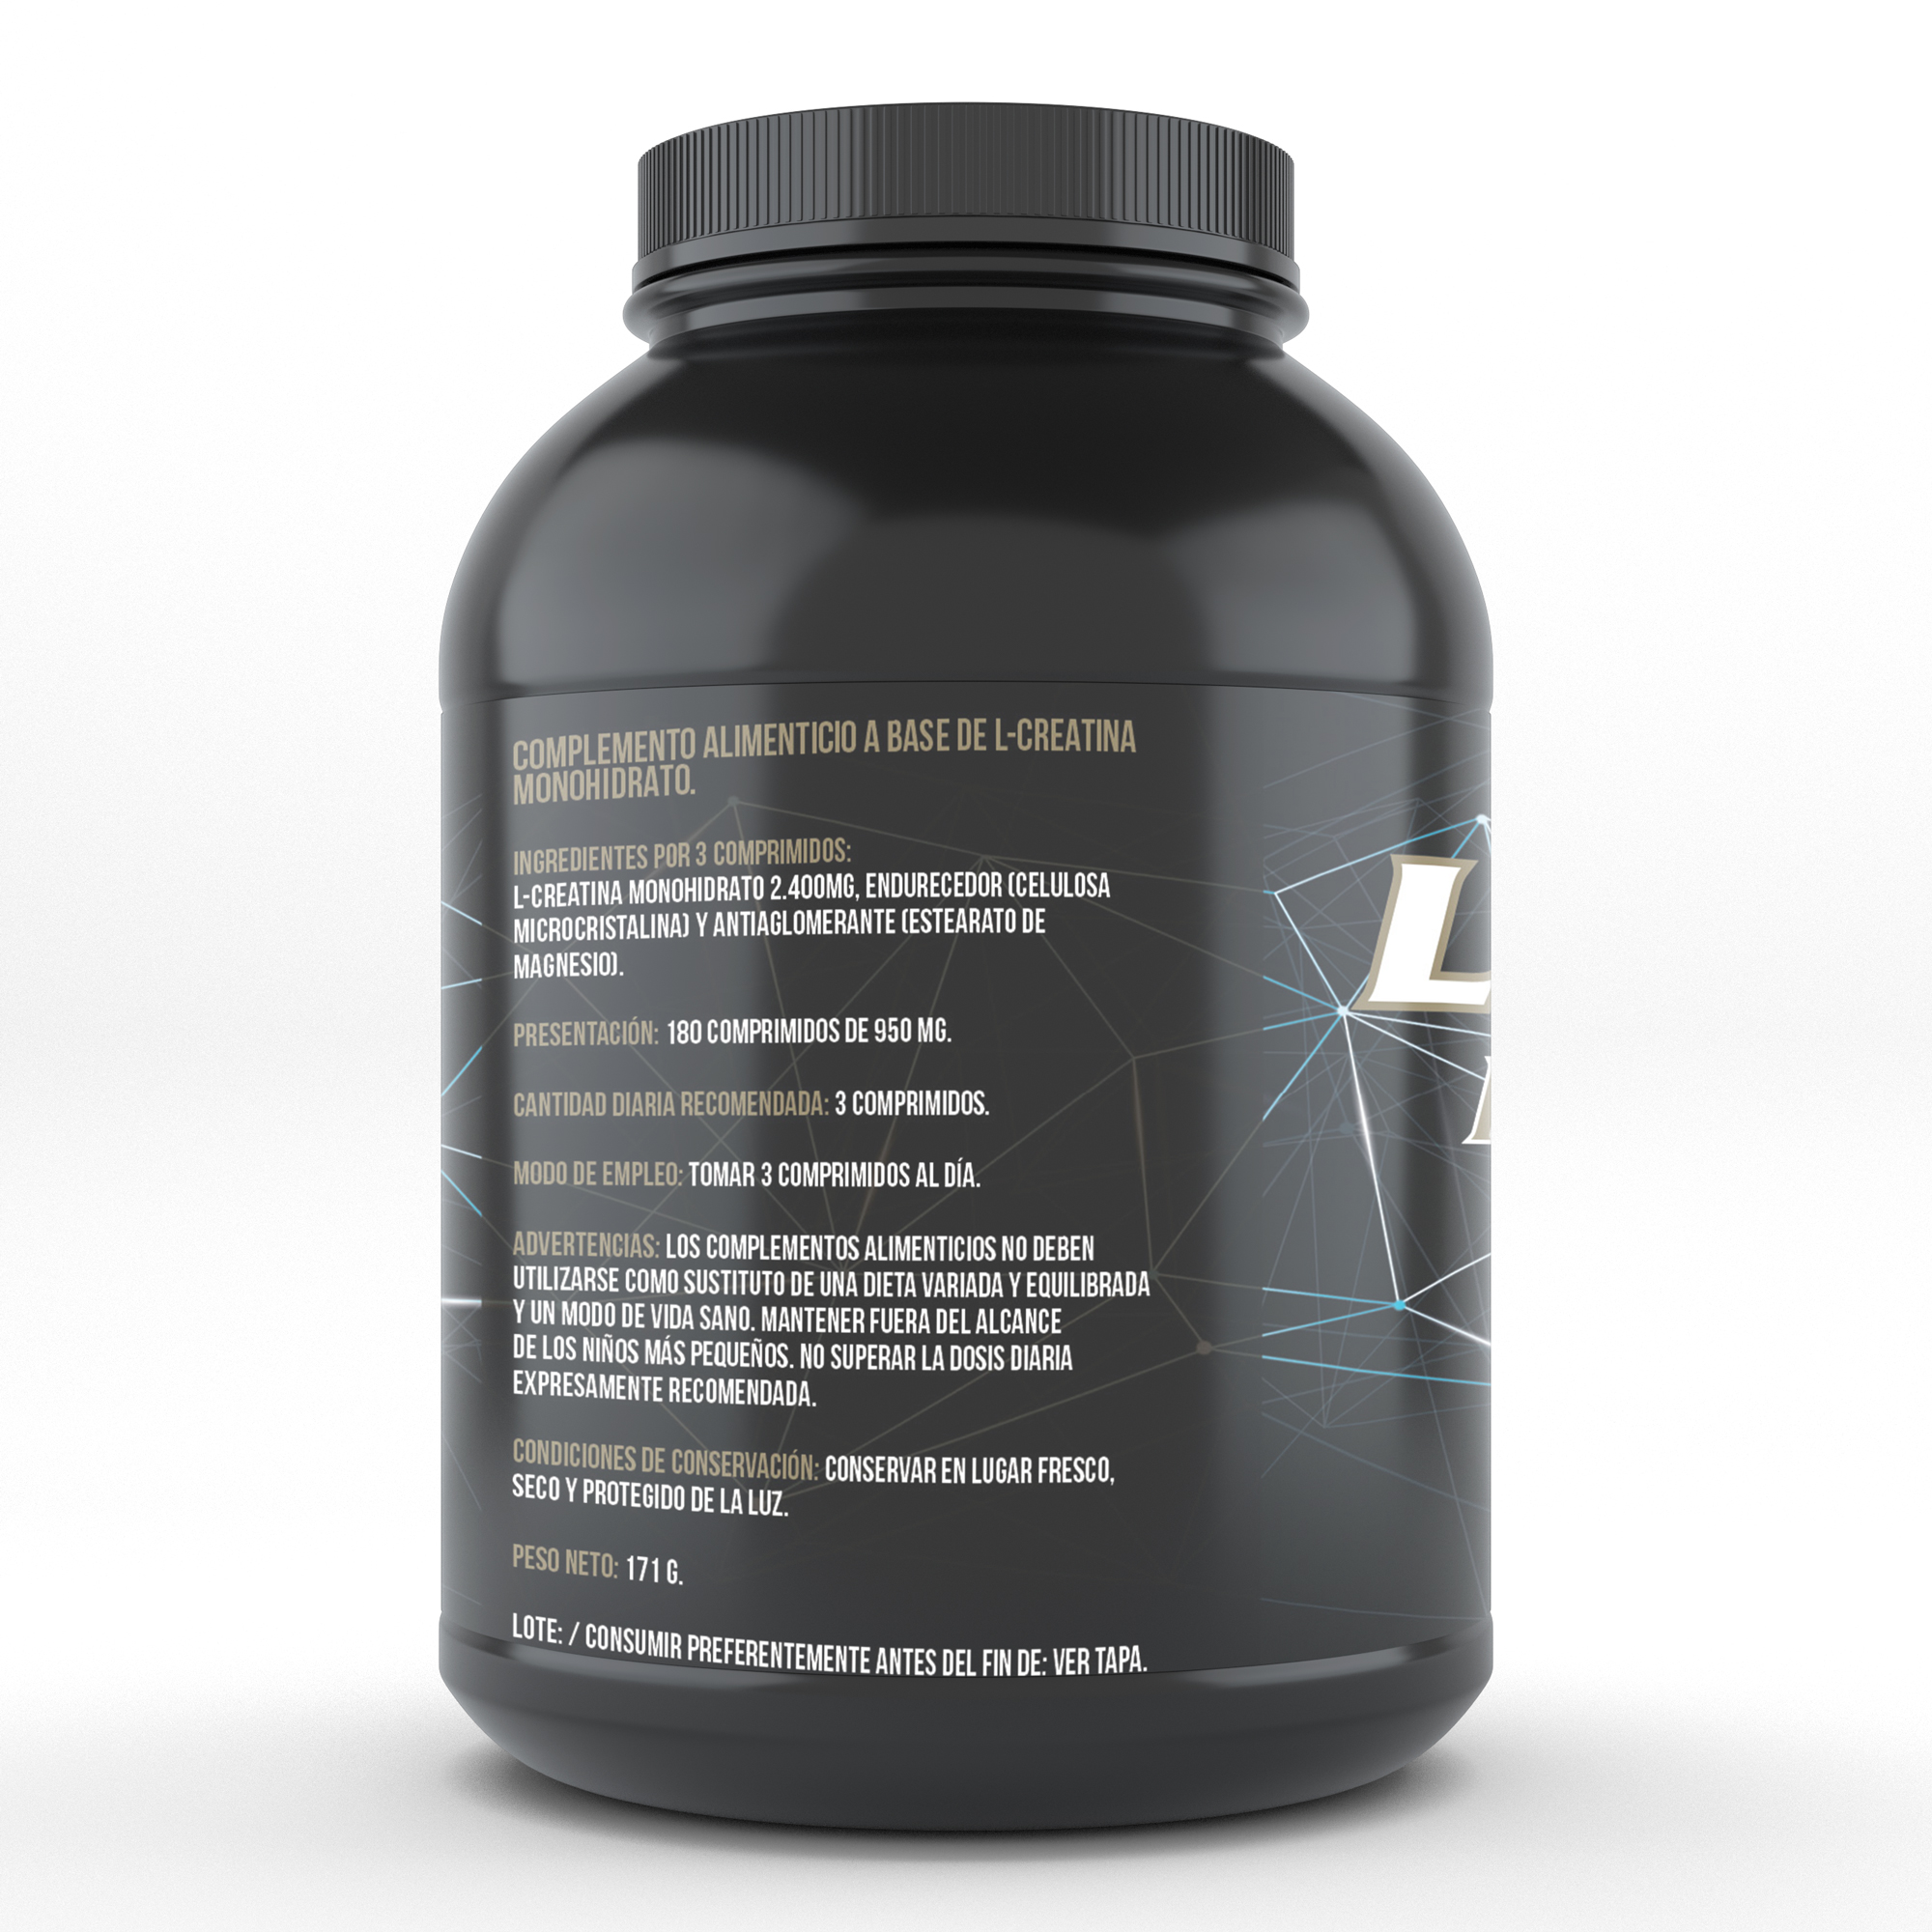 Creatine monohydrate | Sports supplement | Increases the sports performance and the mass | 180 tablets Qualnat 1